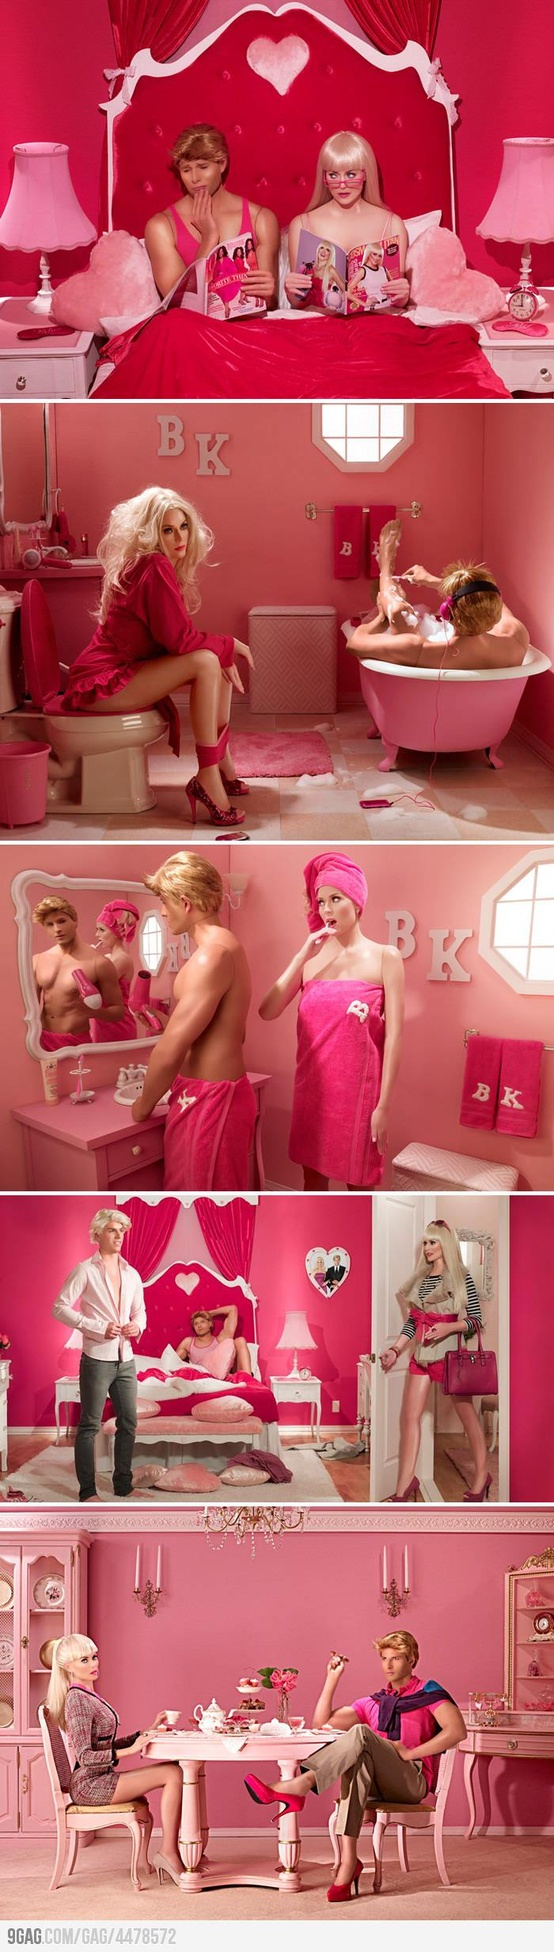 Barbie and Ken's marriage in real life...